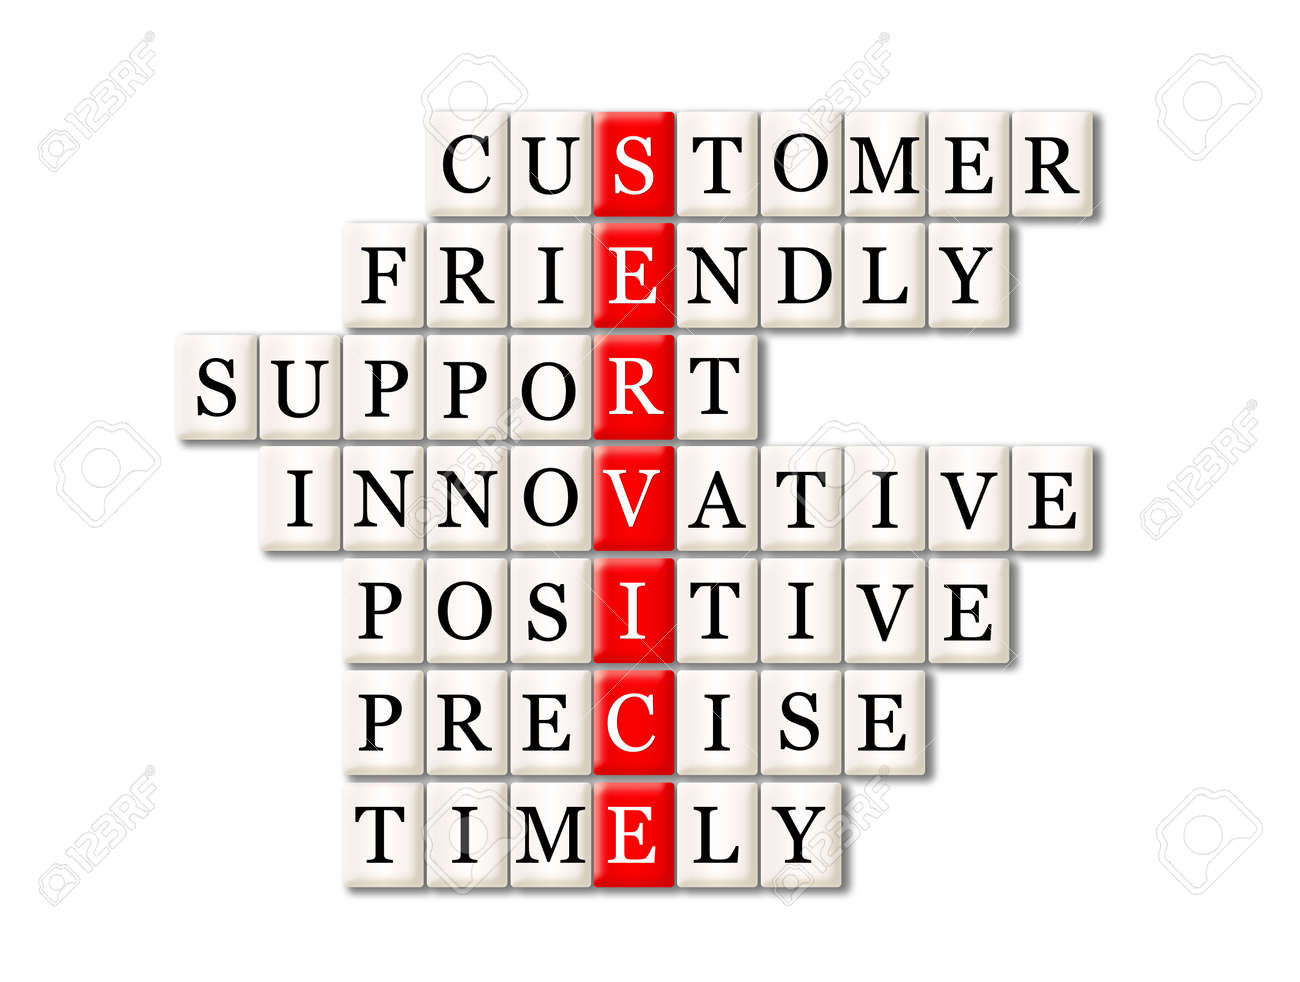 customer service concept -customer friendly support,innovative,positive ,precise ,timely Stock Photo - 16427690